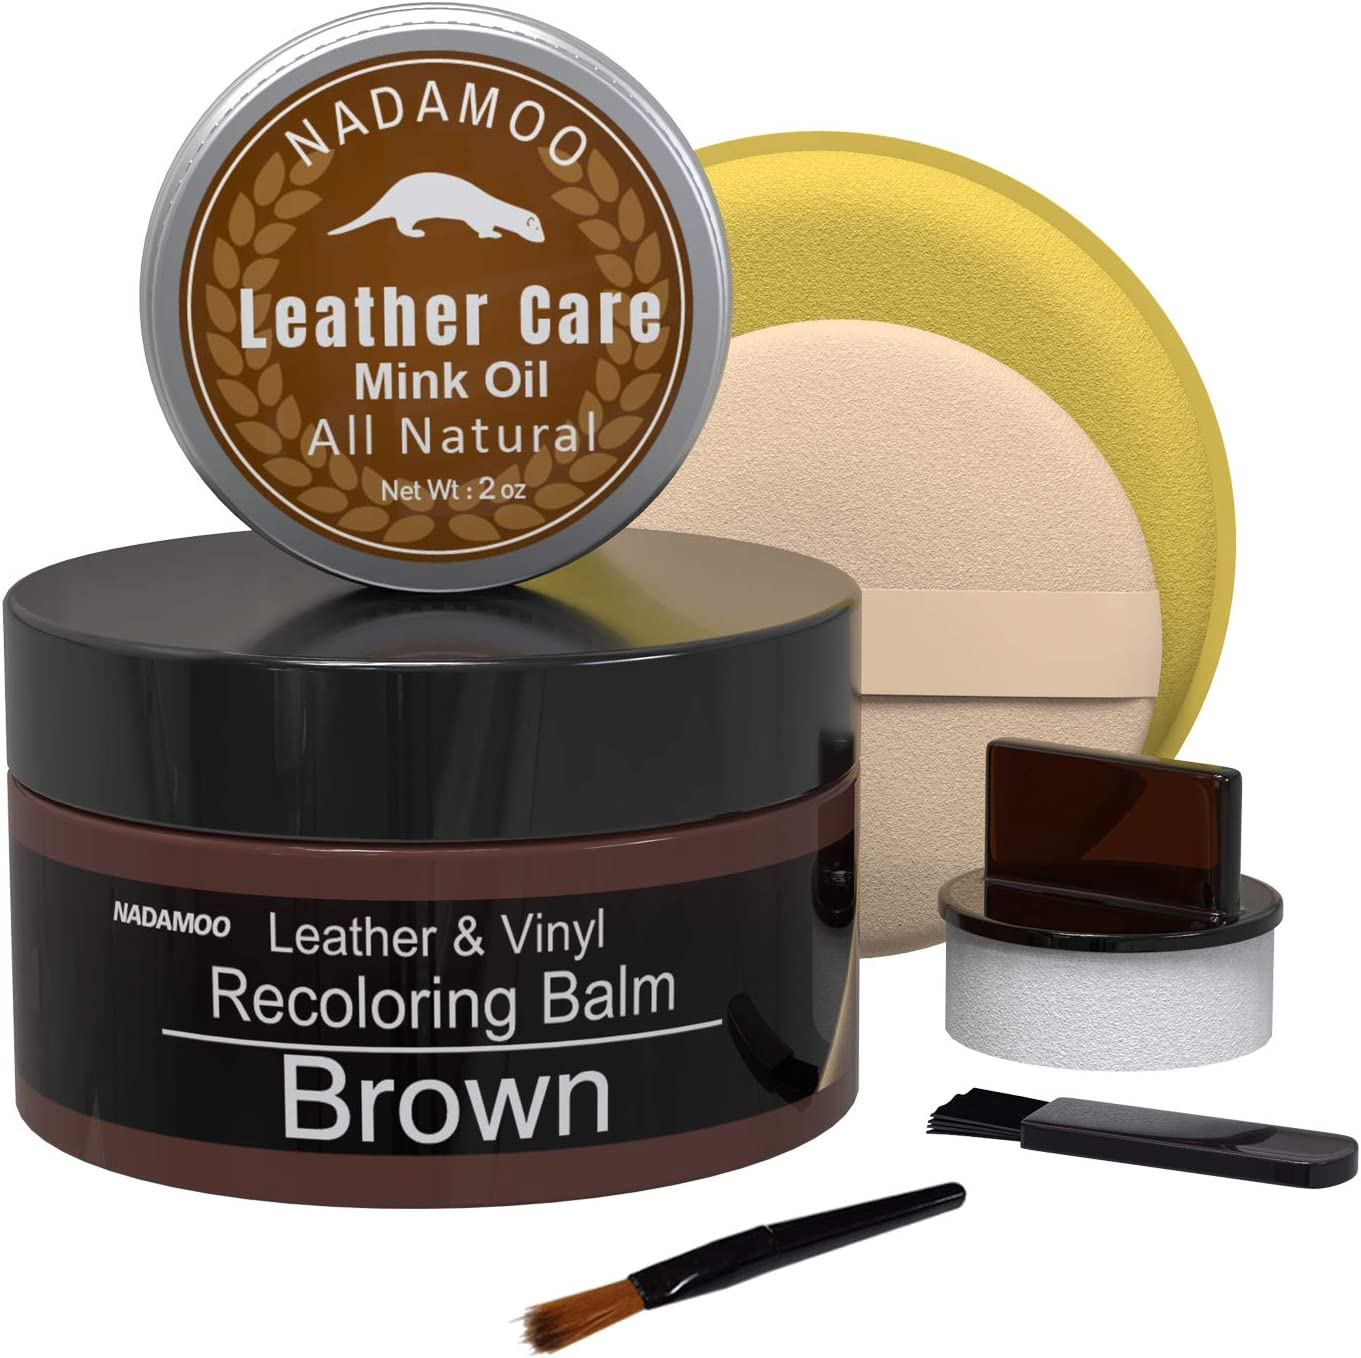 NADAMOO Brown Leather Recoloring Balm with Mink Oil Leather Conditioner, Leather Repair Kits for Couches, Restoration Cream Scratch Repair Leather Dye For Vinyl Furniture Car Seat, Sofa, Shoes